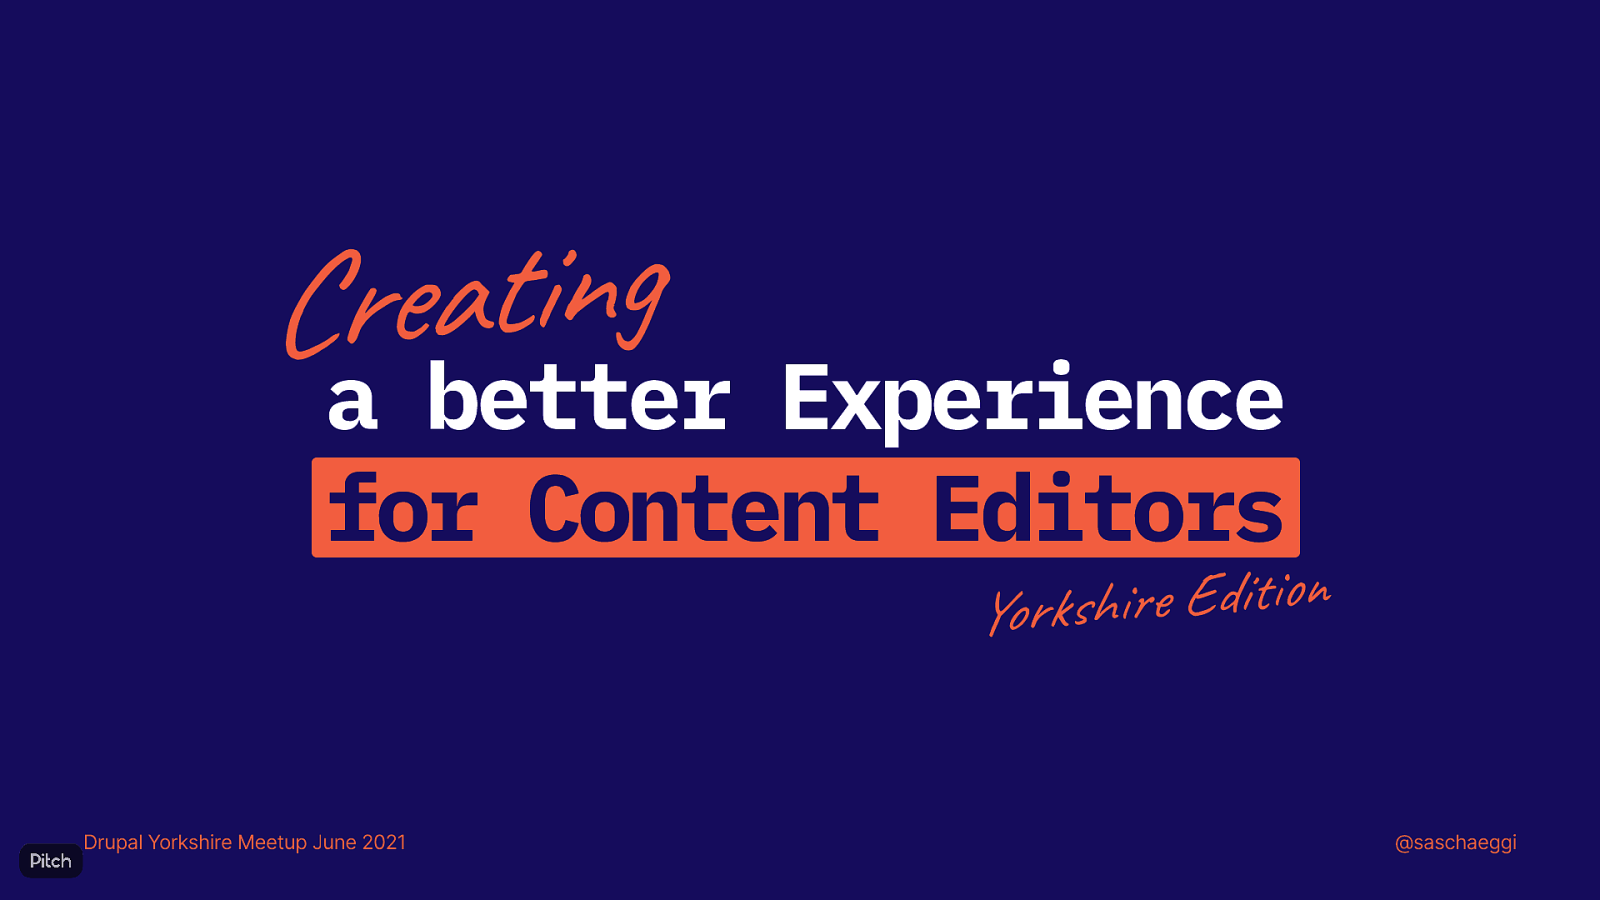 Creating a better Experience for Content Editors (Yorkshire Edition)